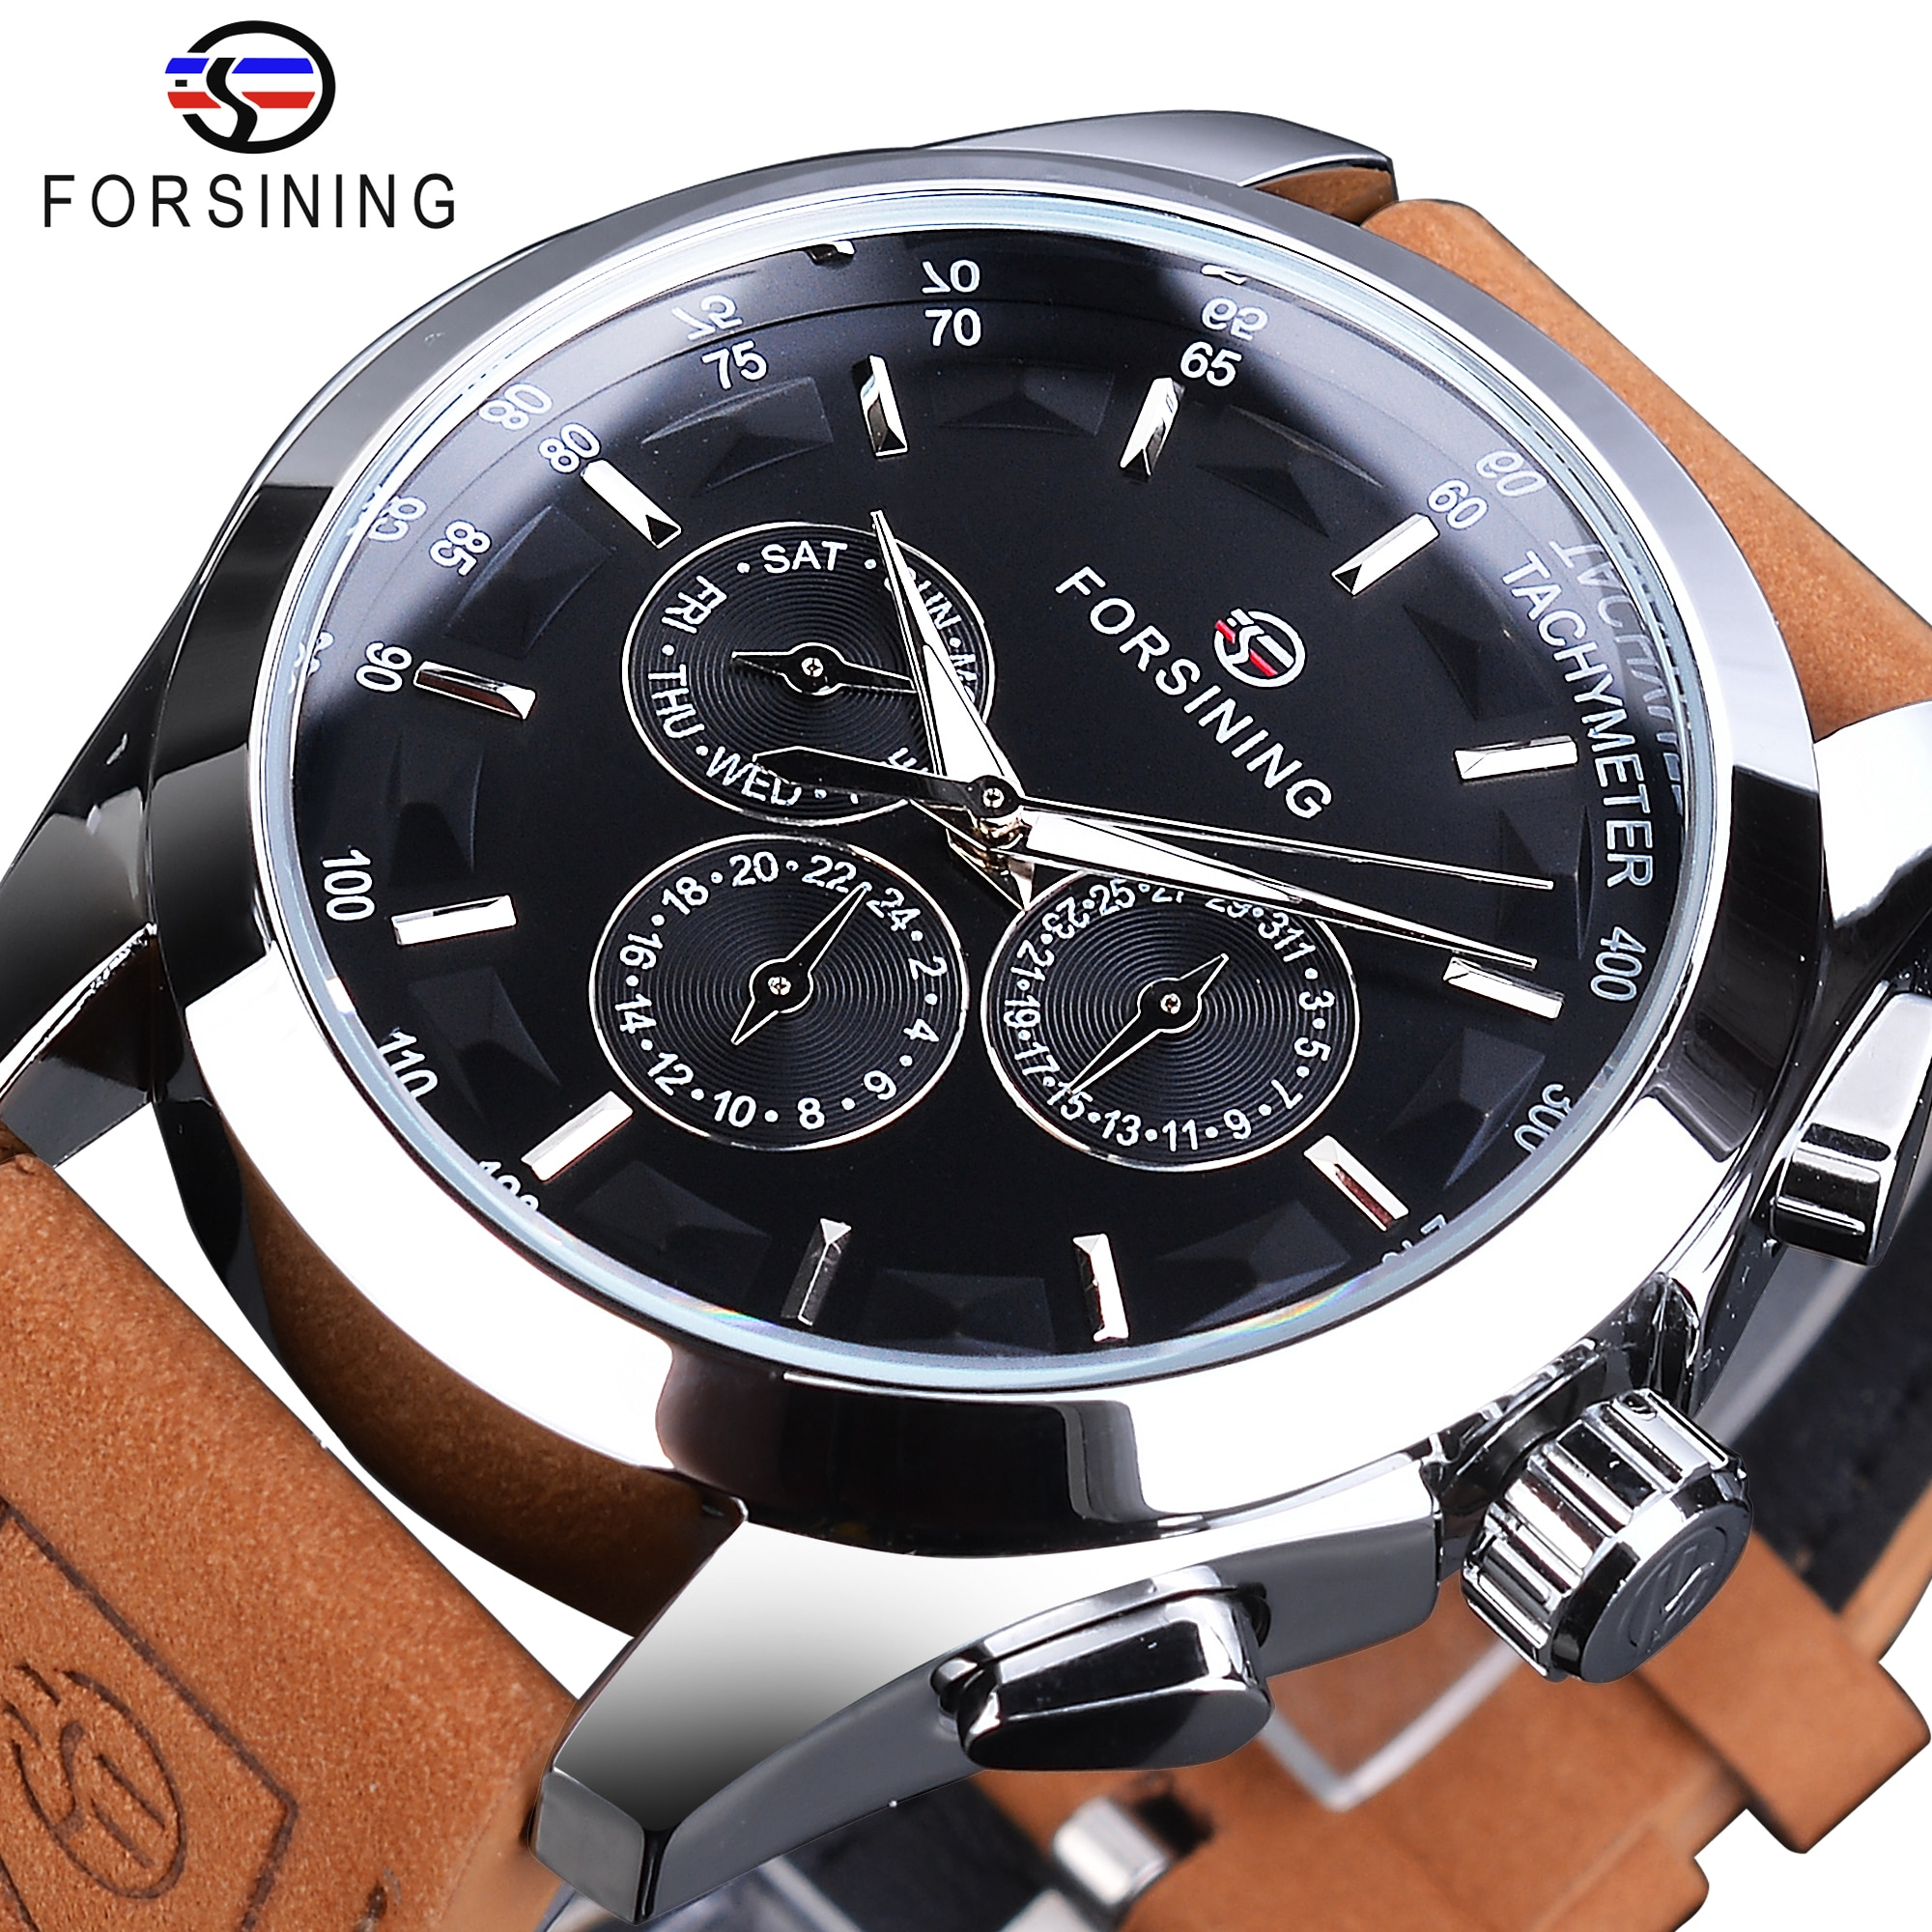 forsining luxury brand men vintage automatic watches male fashion auto date mechanical wristwatches rome dial real leather band Forsining 3 Dial Automatic Watch Men's Mechanical Watches Black Calendar Display Clock Fashion Luminous Male Wristwatches Reloj